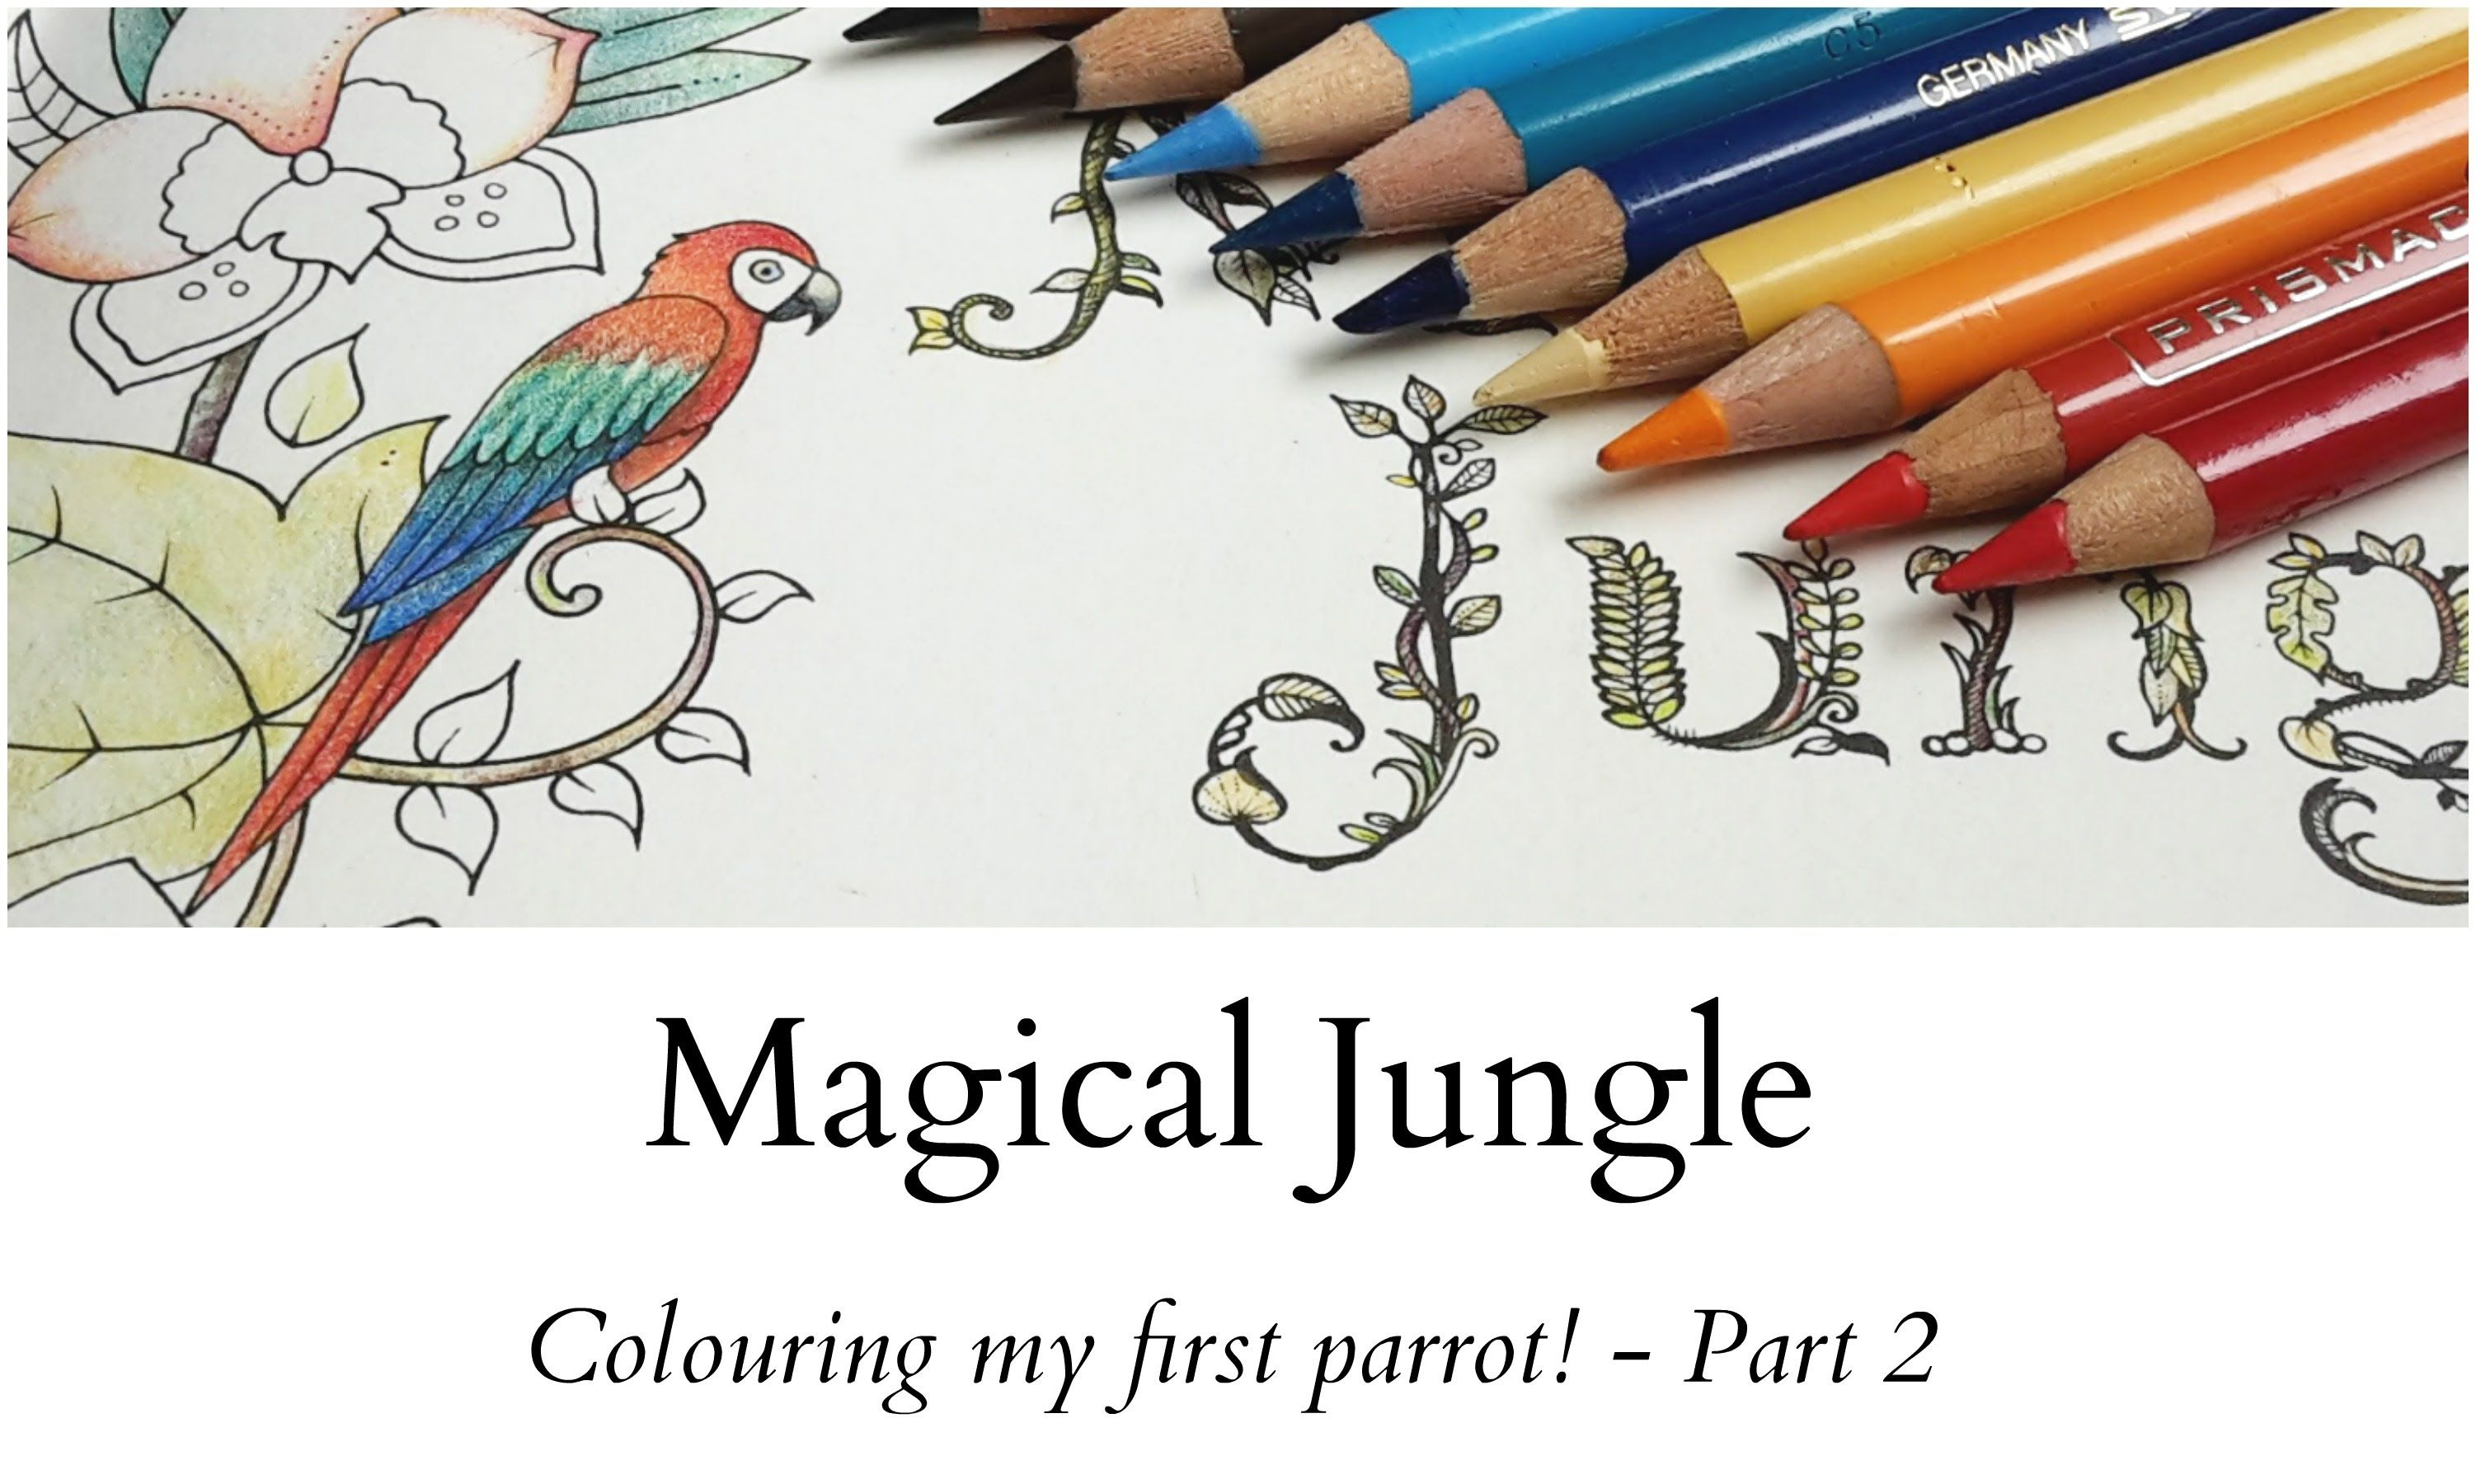 Generous Physiology Coloring Book Small Doodle Coloring Book Square Alphabet Coloring Book The Big Coloring Book Of S Youthful Paisley Designs Coloring Book BlueWedding Coloring Book Template Magical Jungle   Colouring My First Parrot!   Part 2   Videos ..